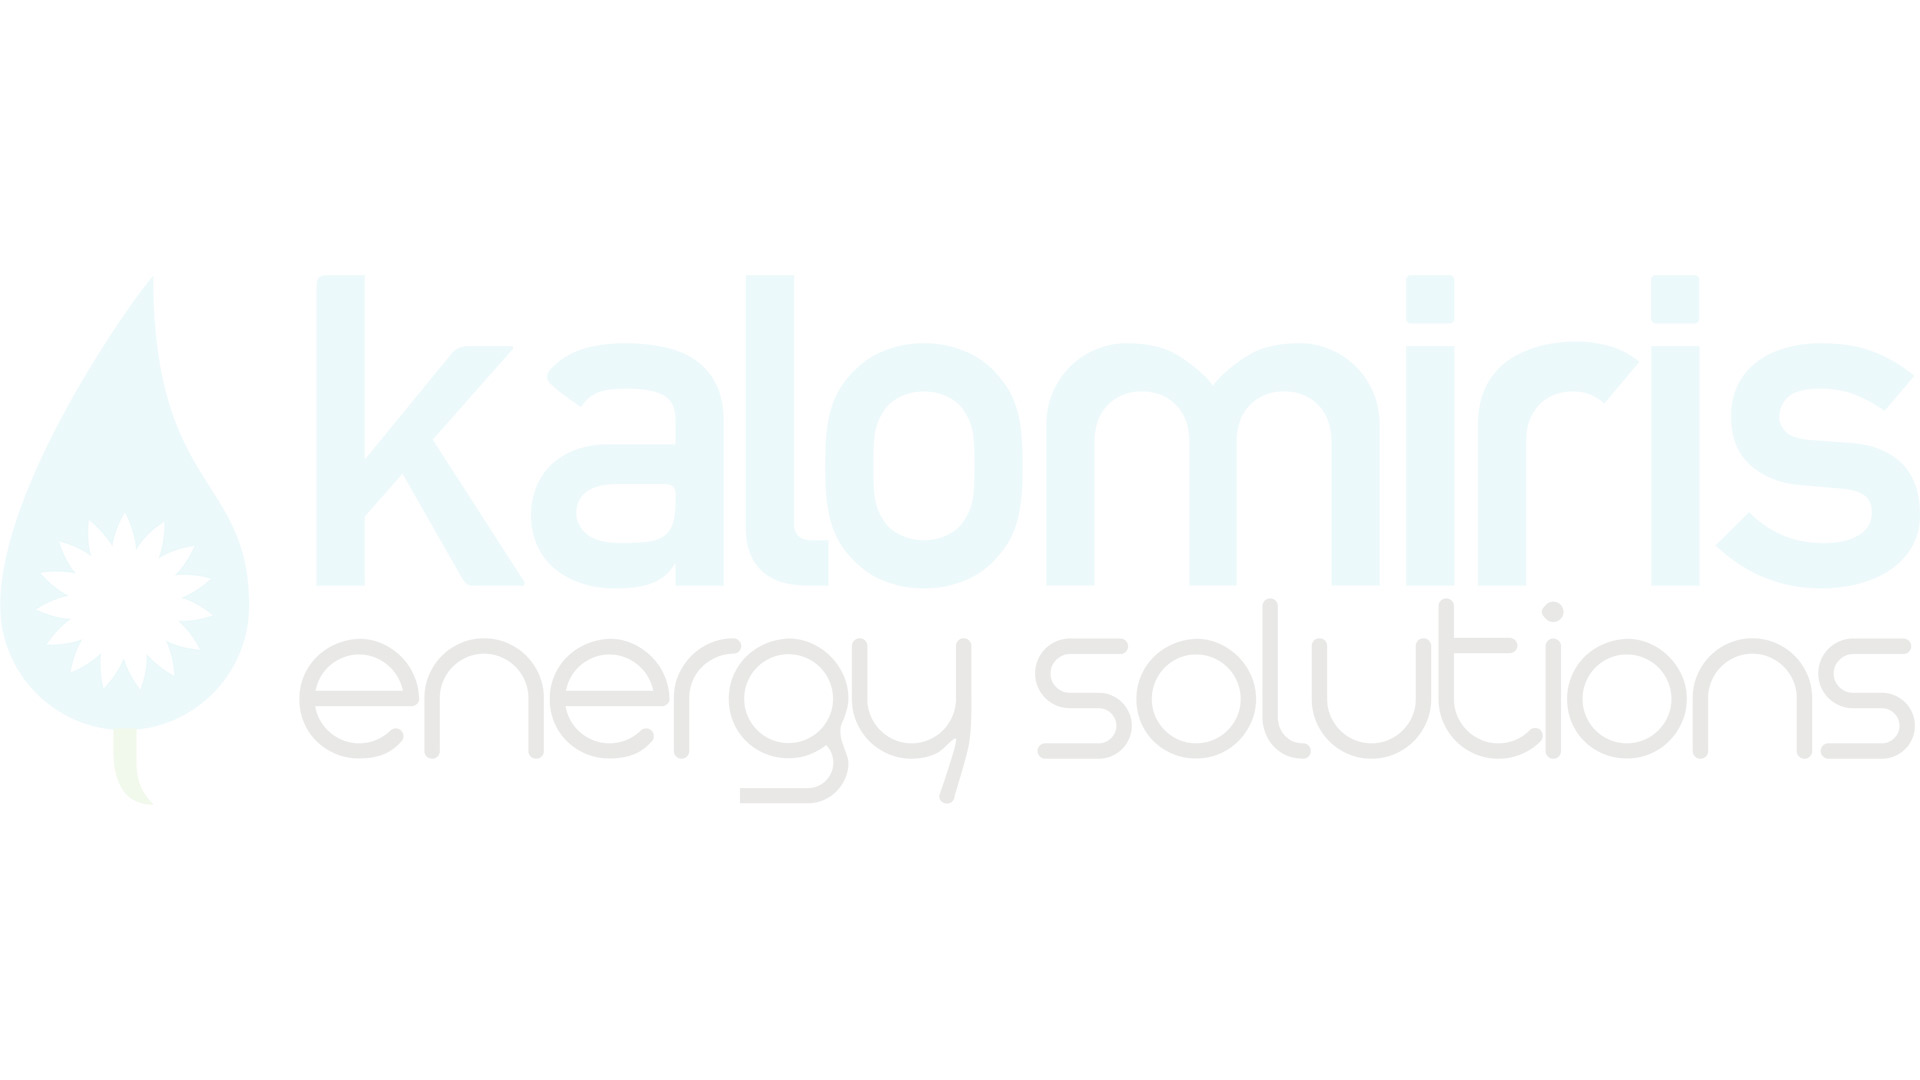 Ceiling Fan CASAFAN Eco Gamma 137 WE-LG White / Light Gray 54 (137cm)